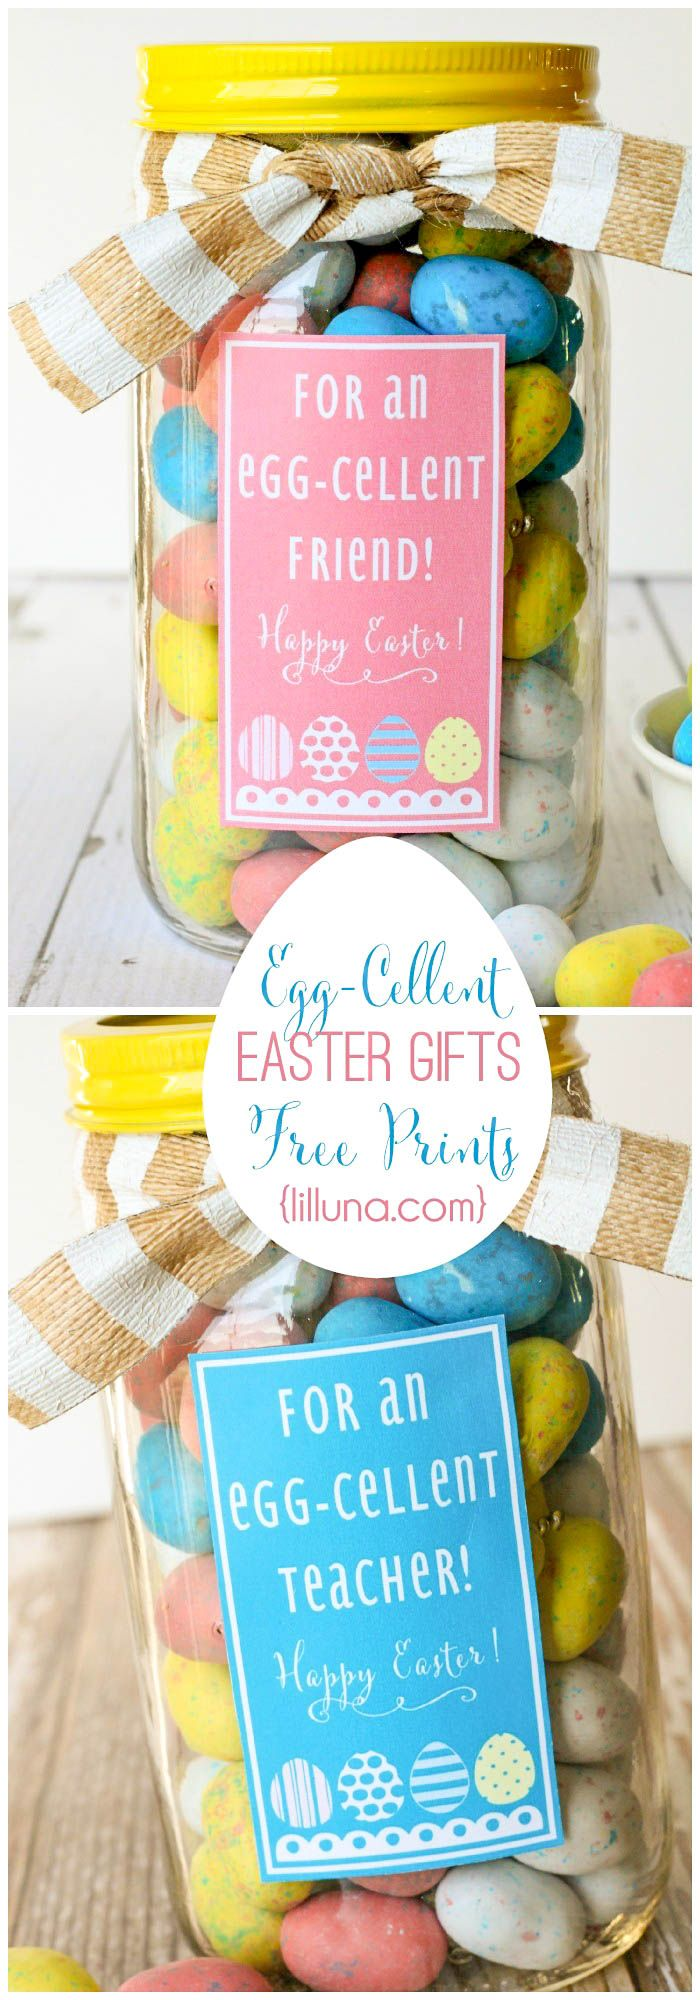 Egg cellent easter gift ideas cute and inexpensive lilluna egg cellent easter gift ideas cute and inexpensive free prints with labels for teachers and friends negle Images